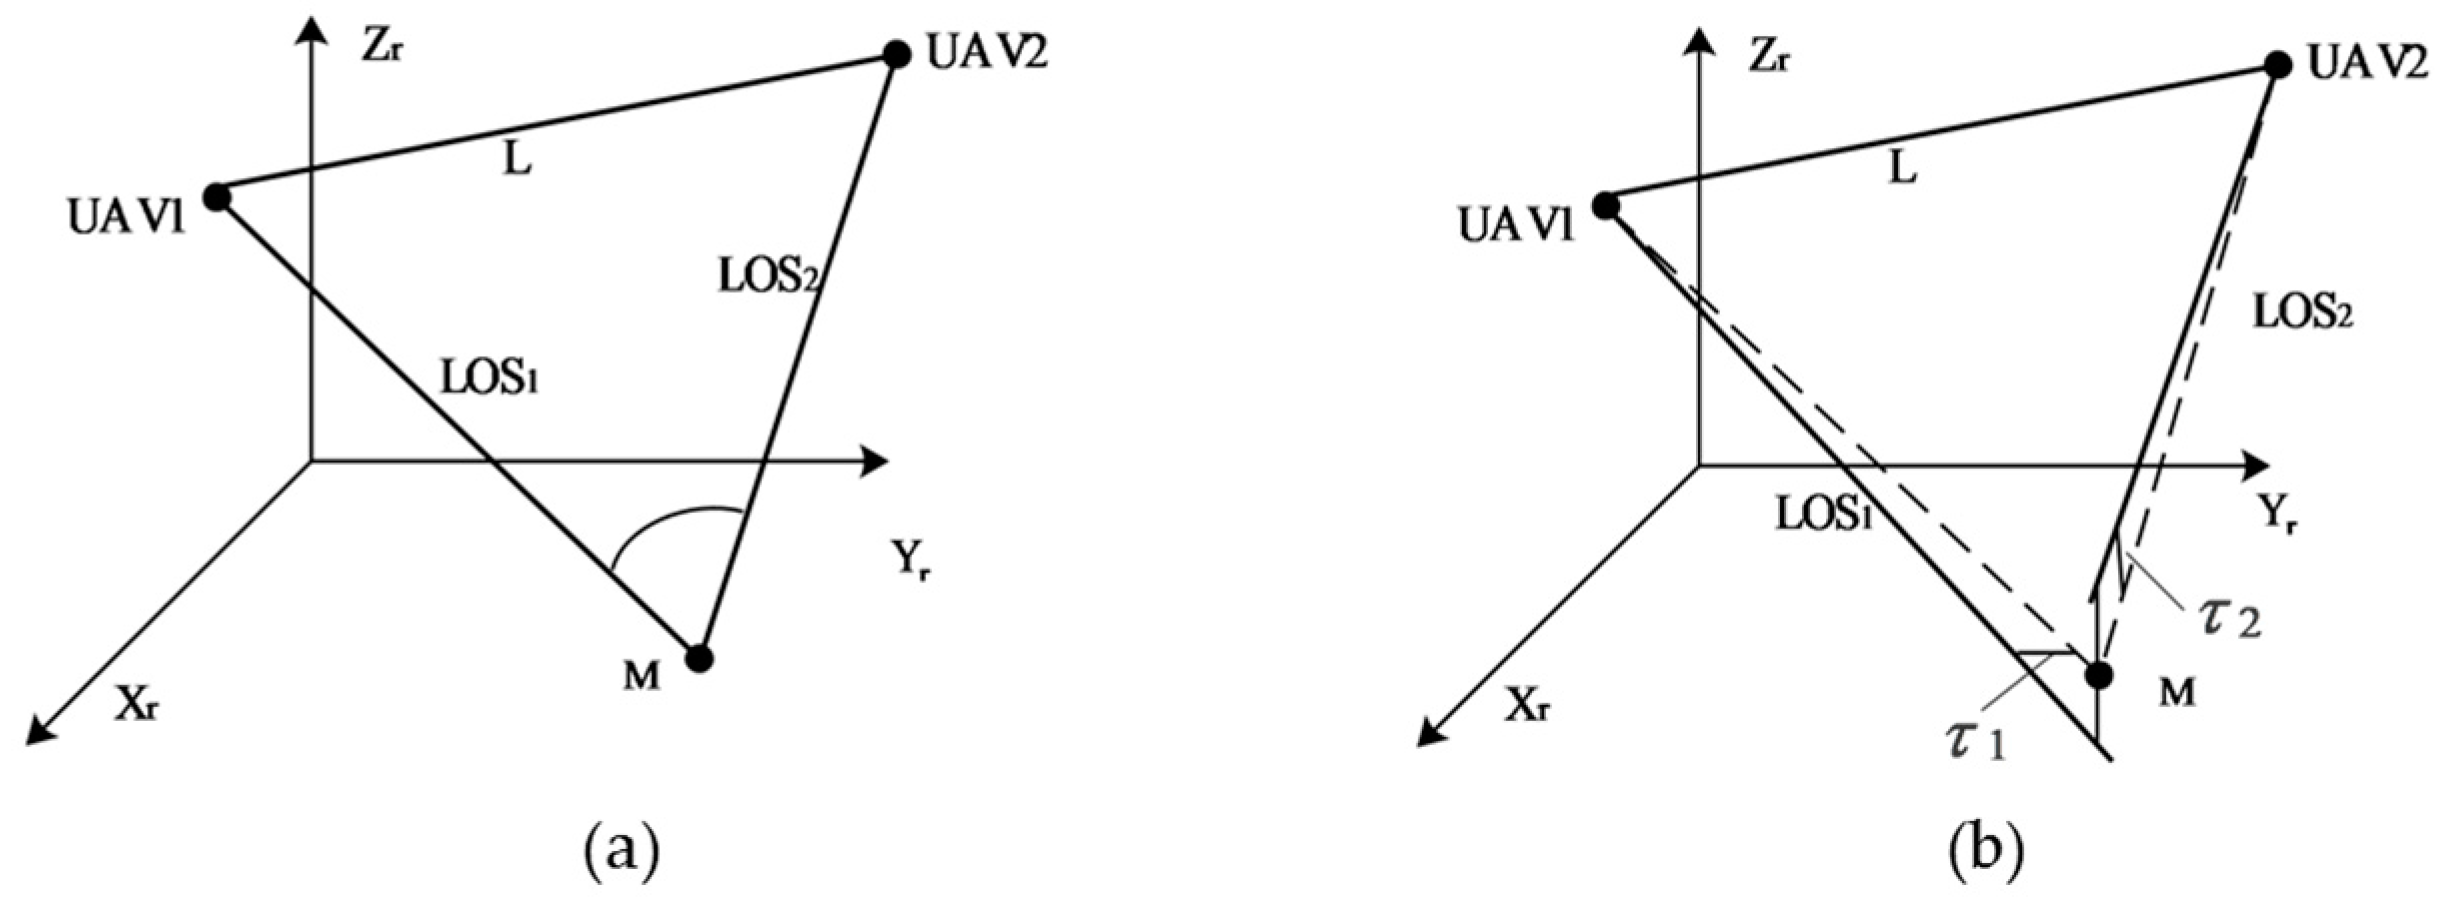 Uav System Diagram